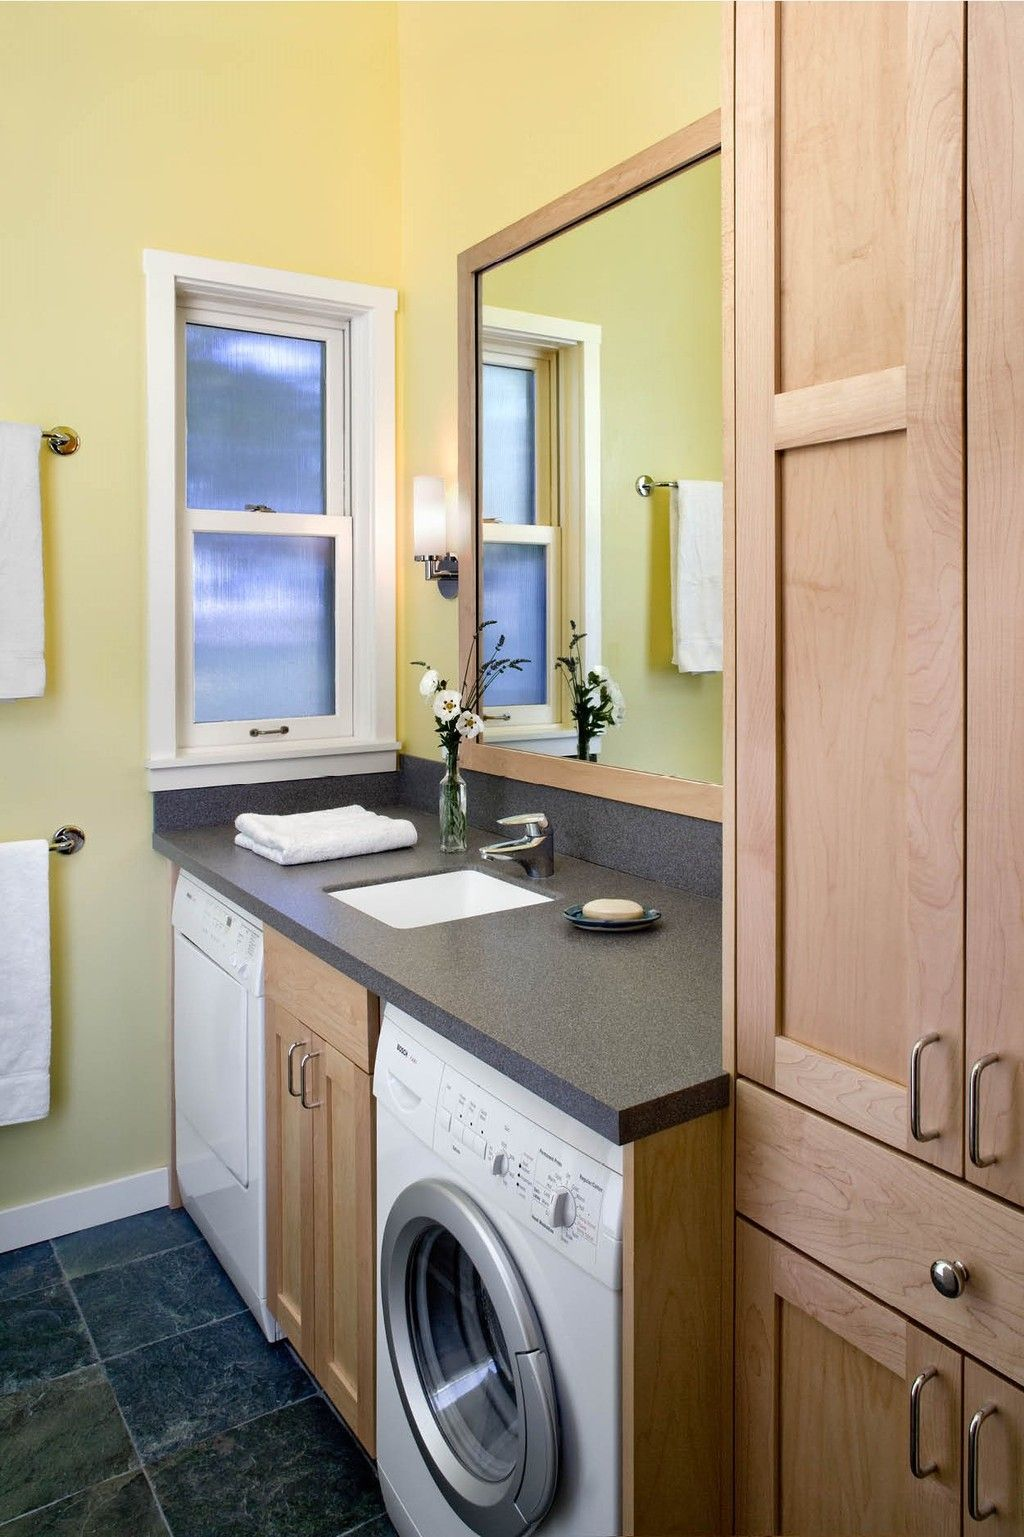 Pin on Design on Small Space Small Bathroom Ideas With Washing Machine id=84113